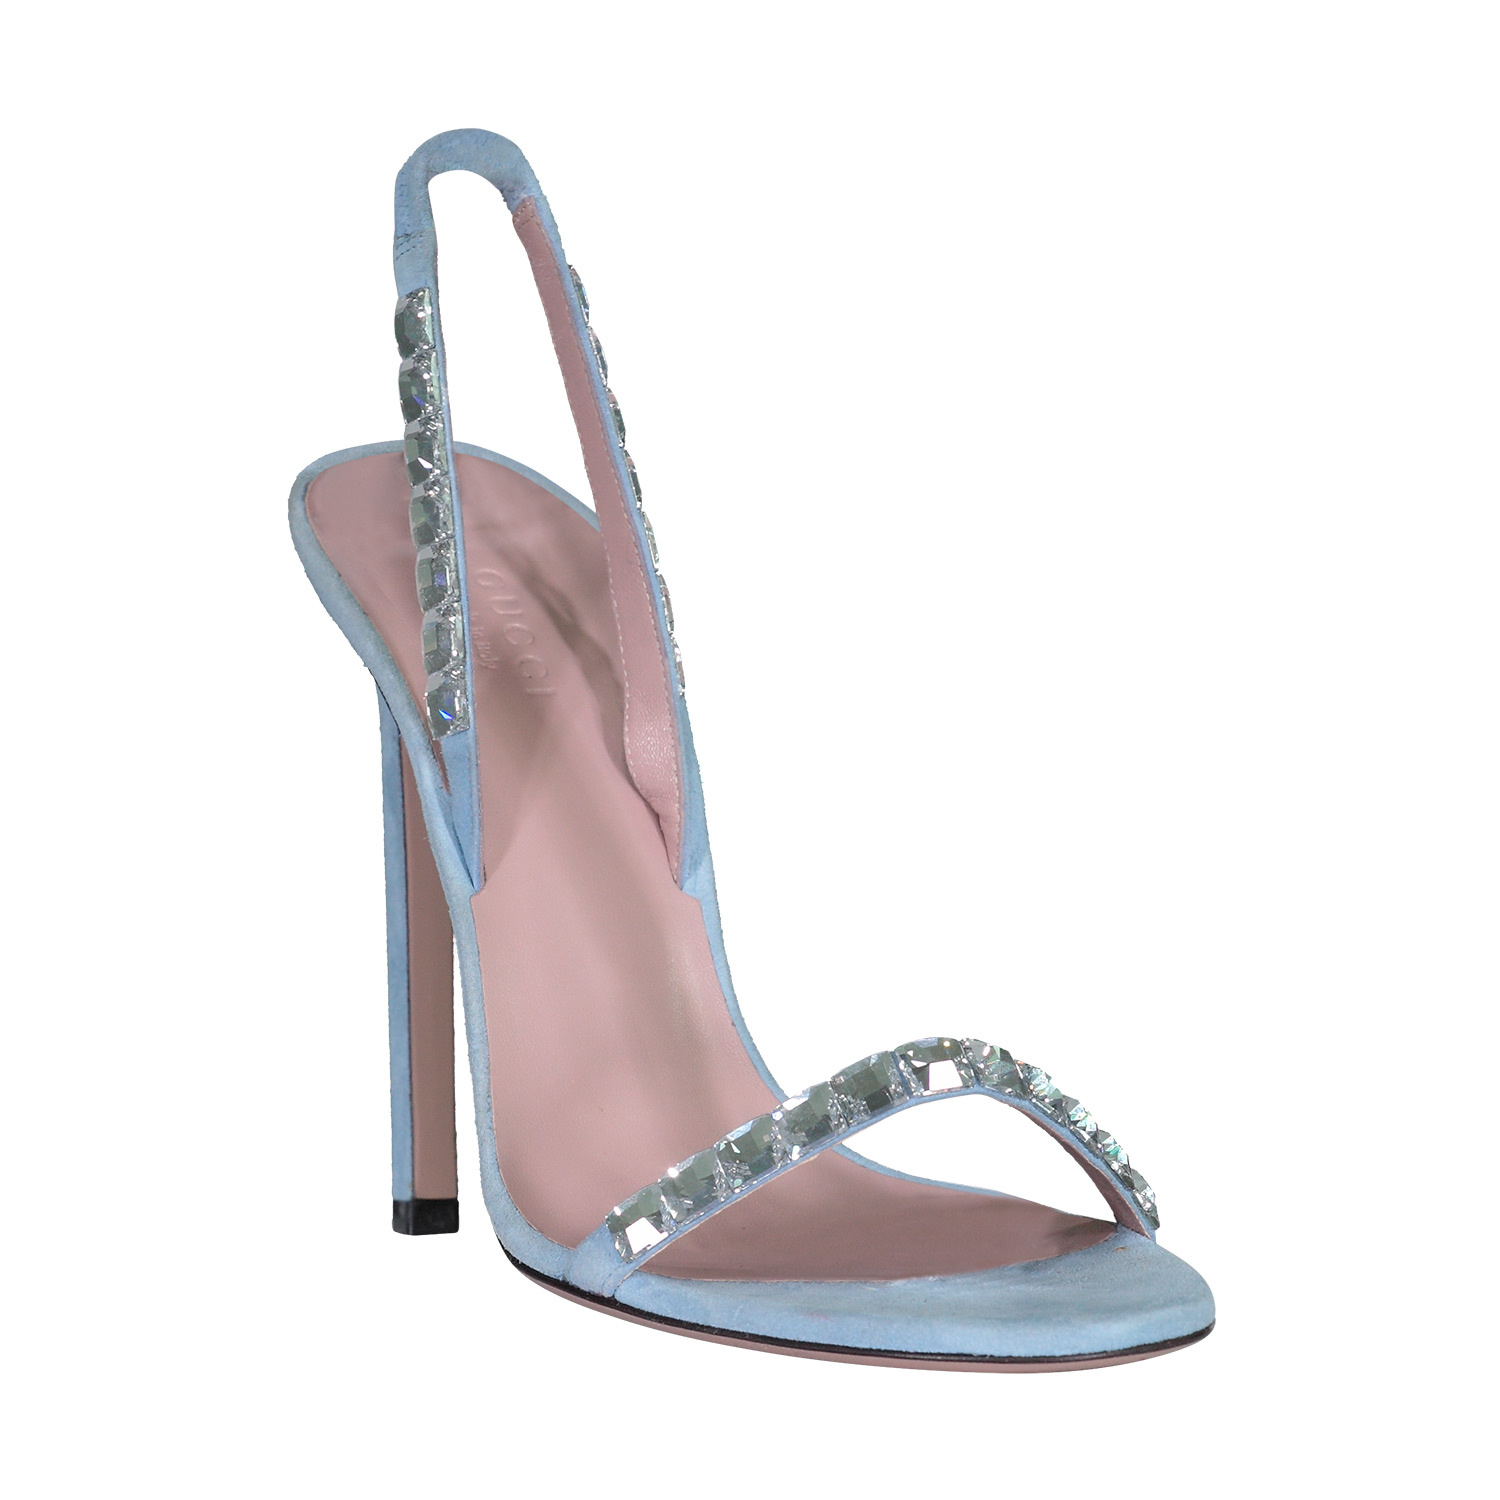 Gucci Gucci Baby Blue Suede Crystal Mallory Heeled Sandals